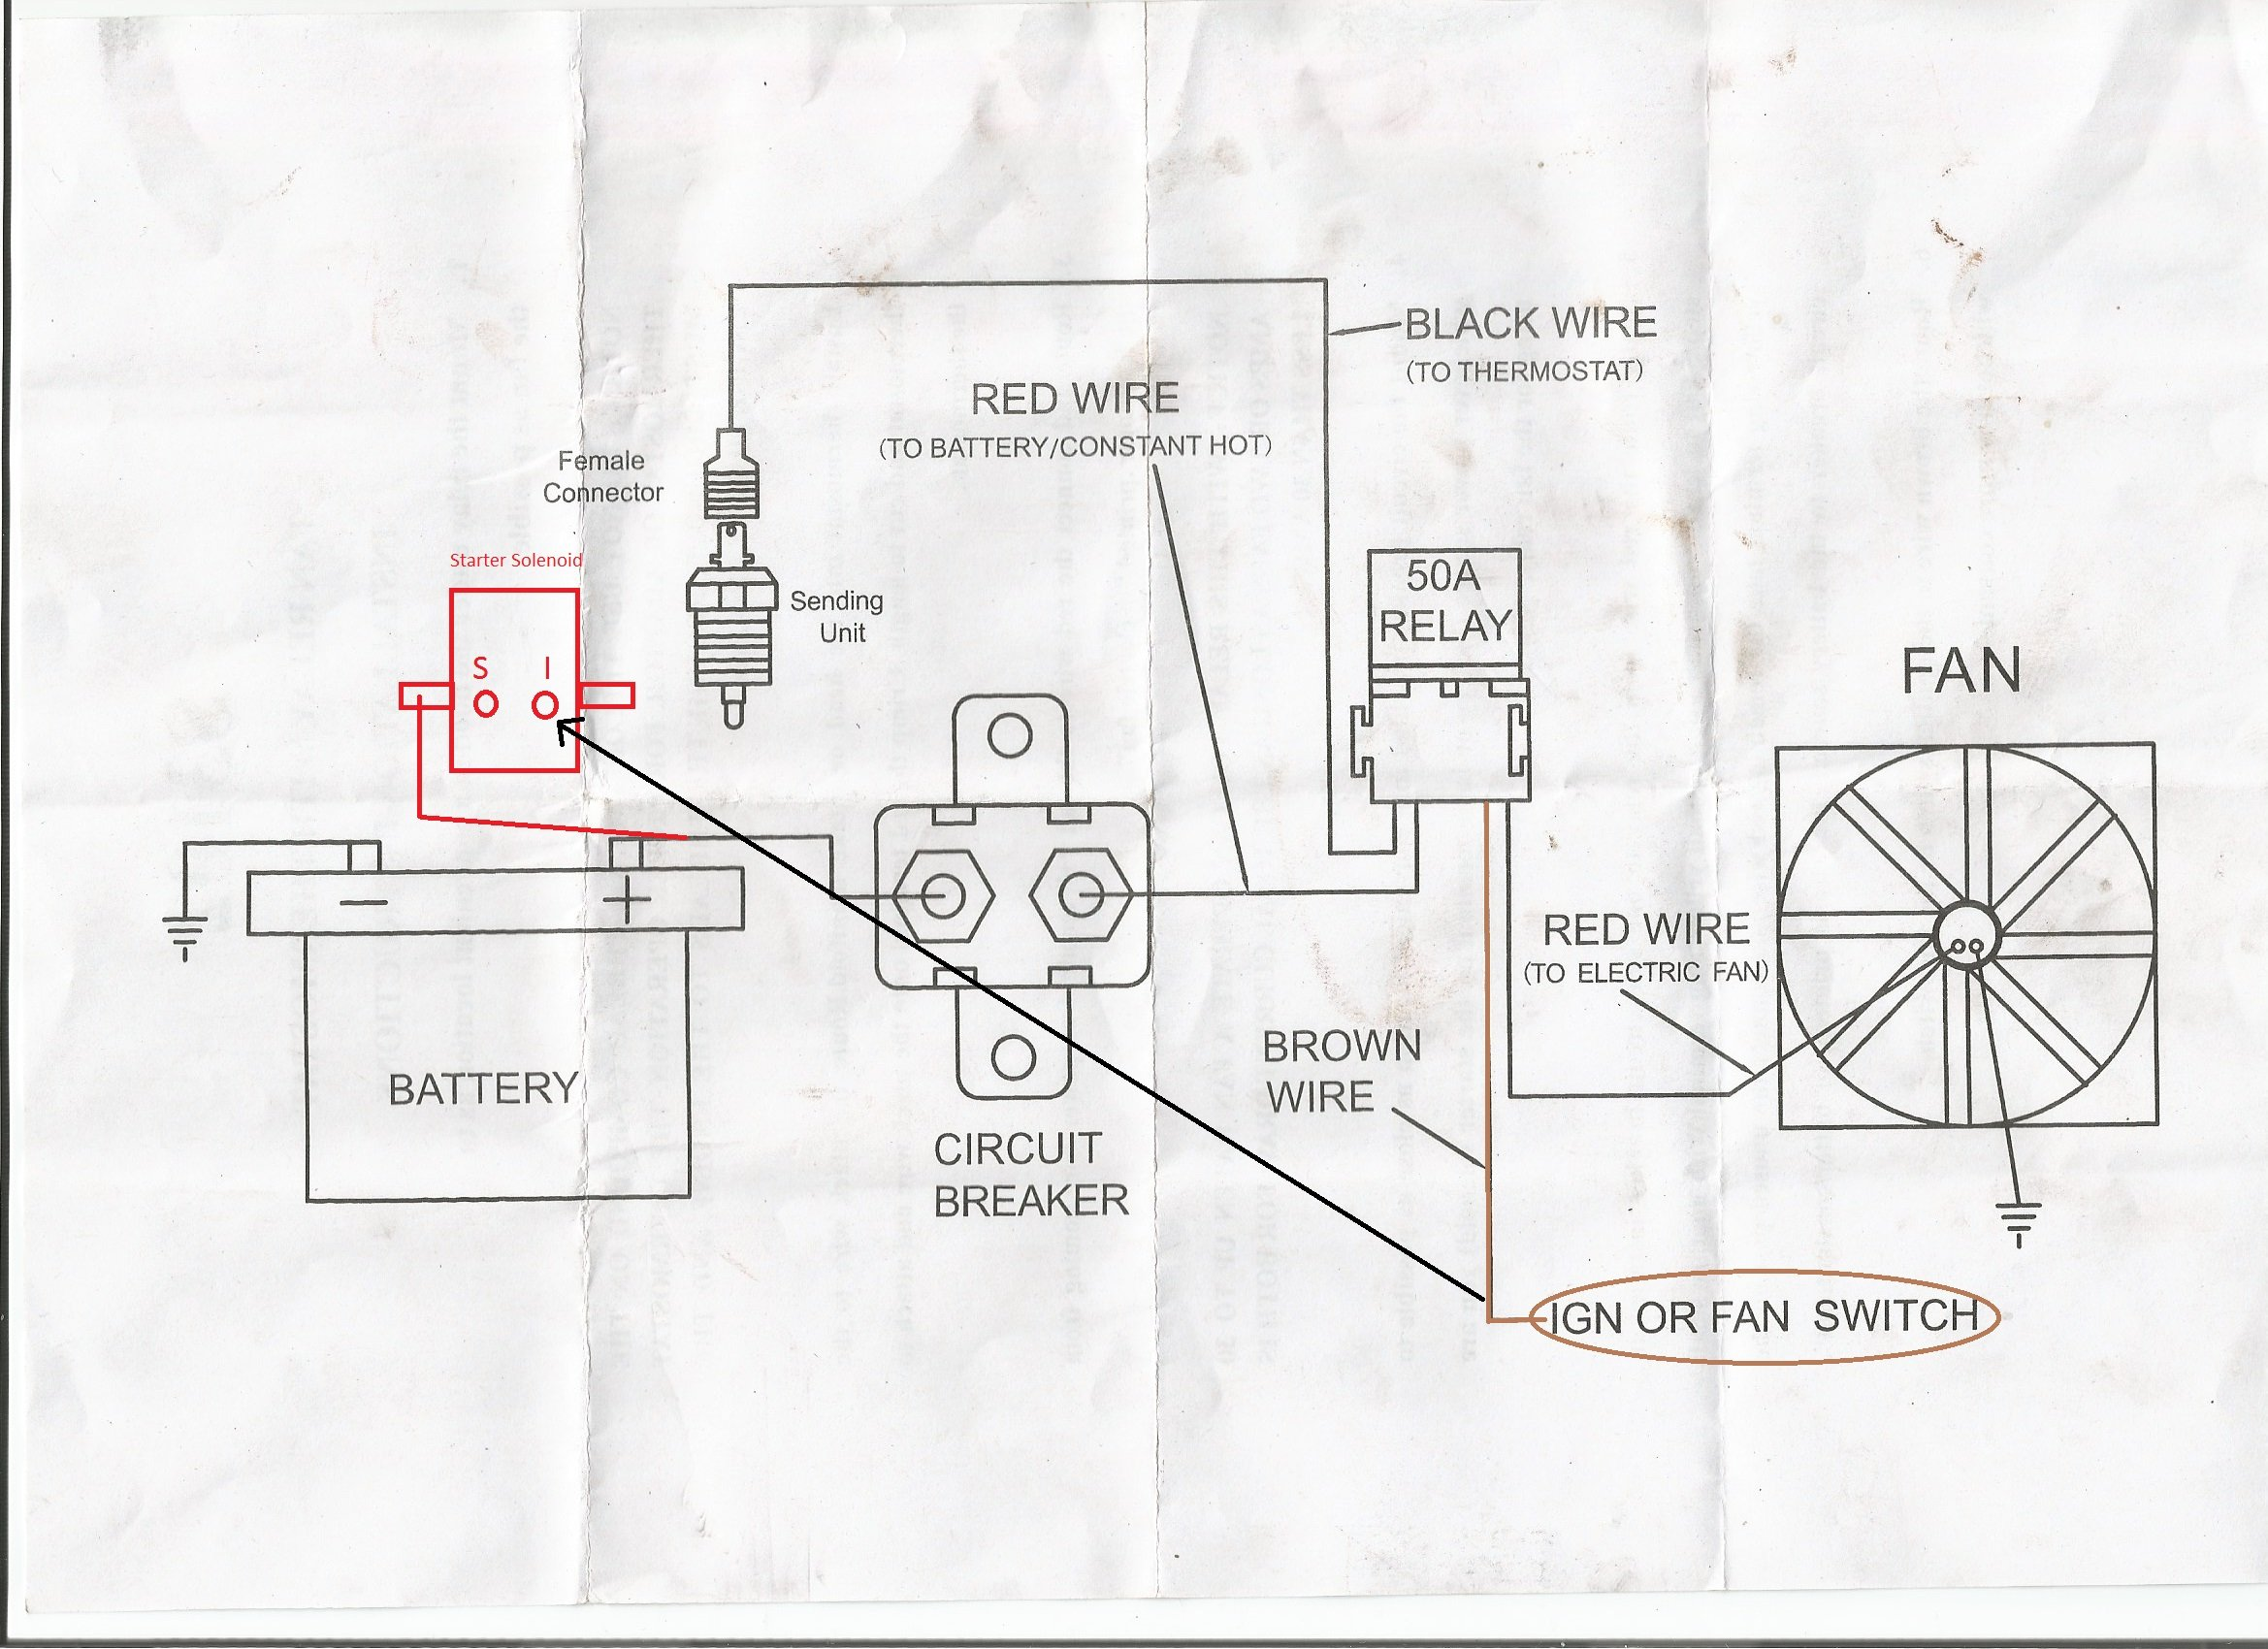 elec fan wiring diagram 2005 ford taurus cooling electric thermostat 38